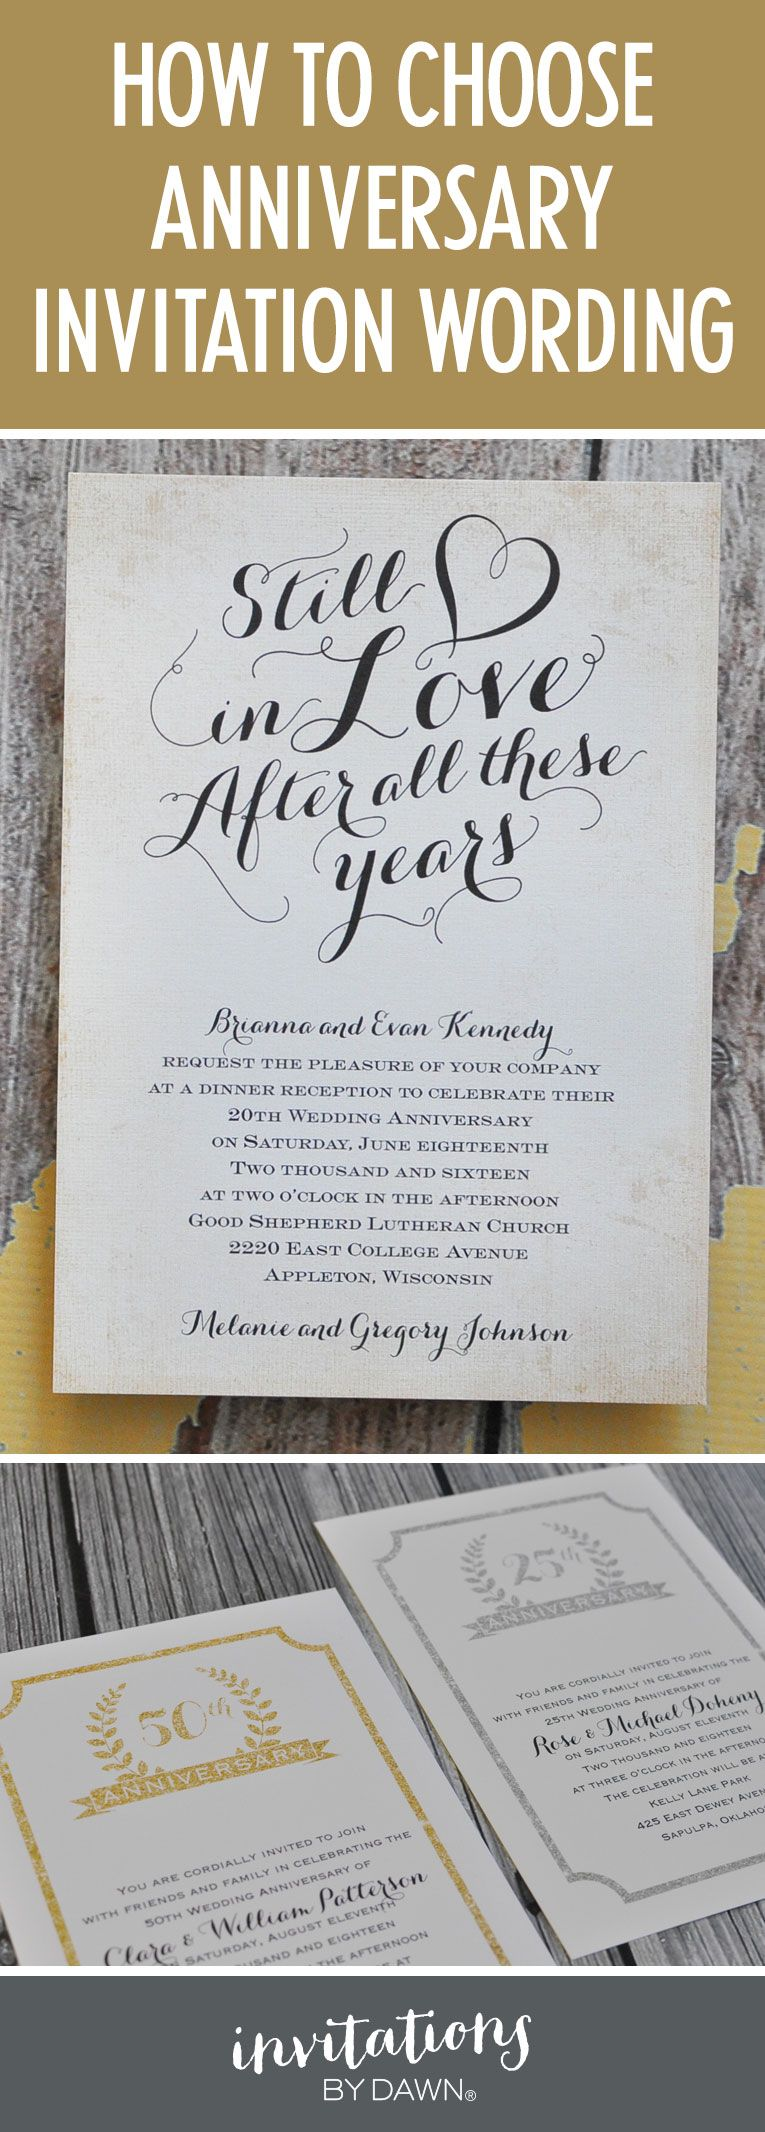 Finding the Right Wedding Anniversary Invitation Wording – 50th Anniversary Party Invitation Wording